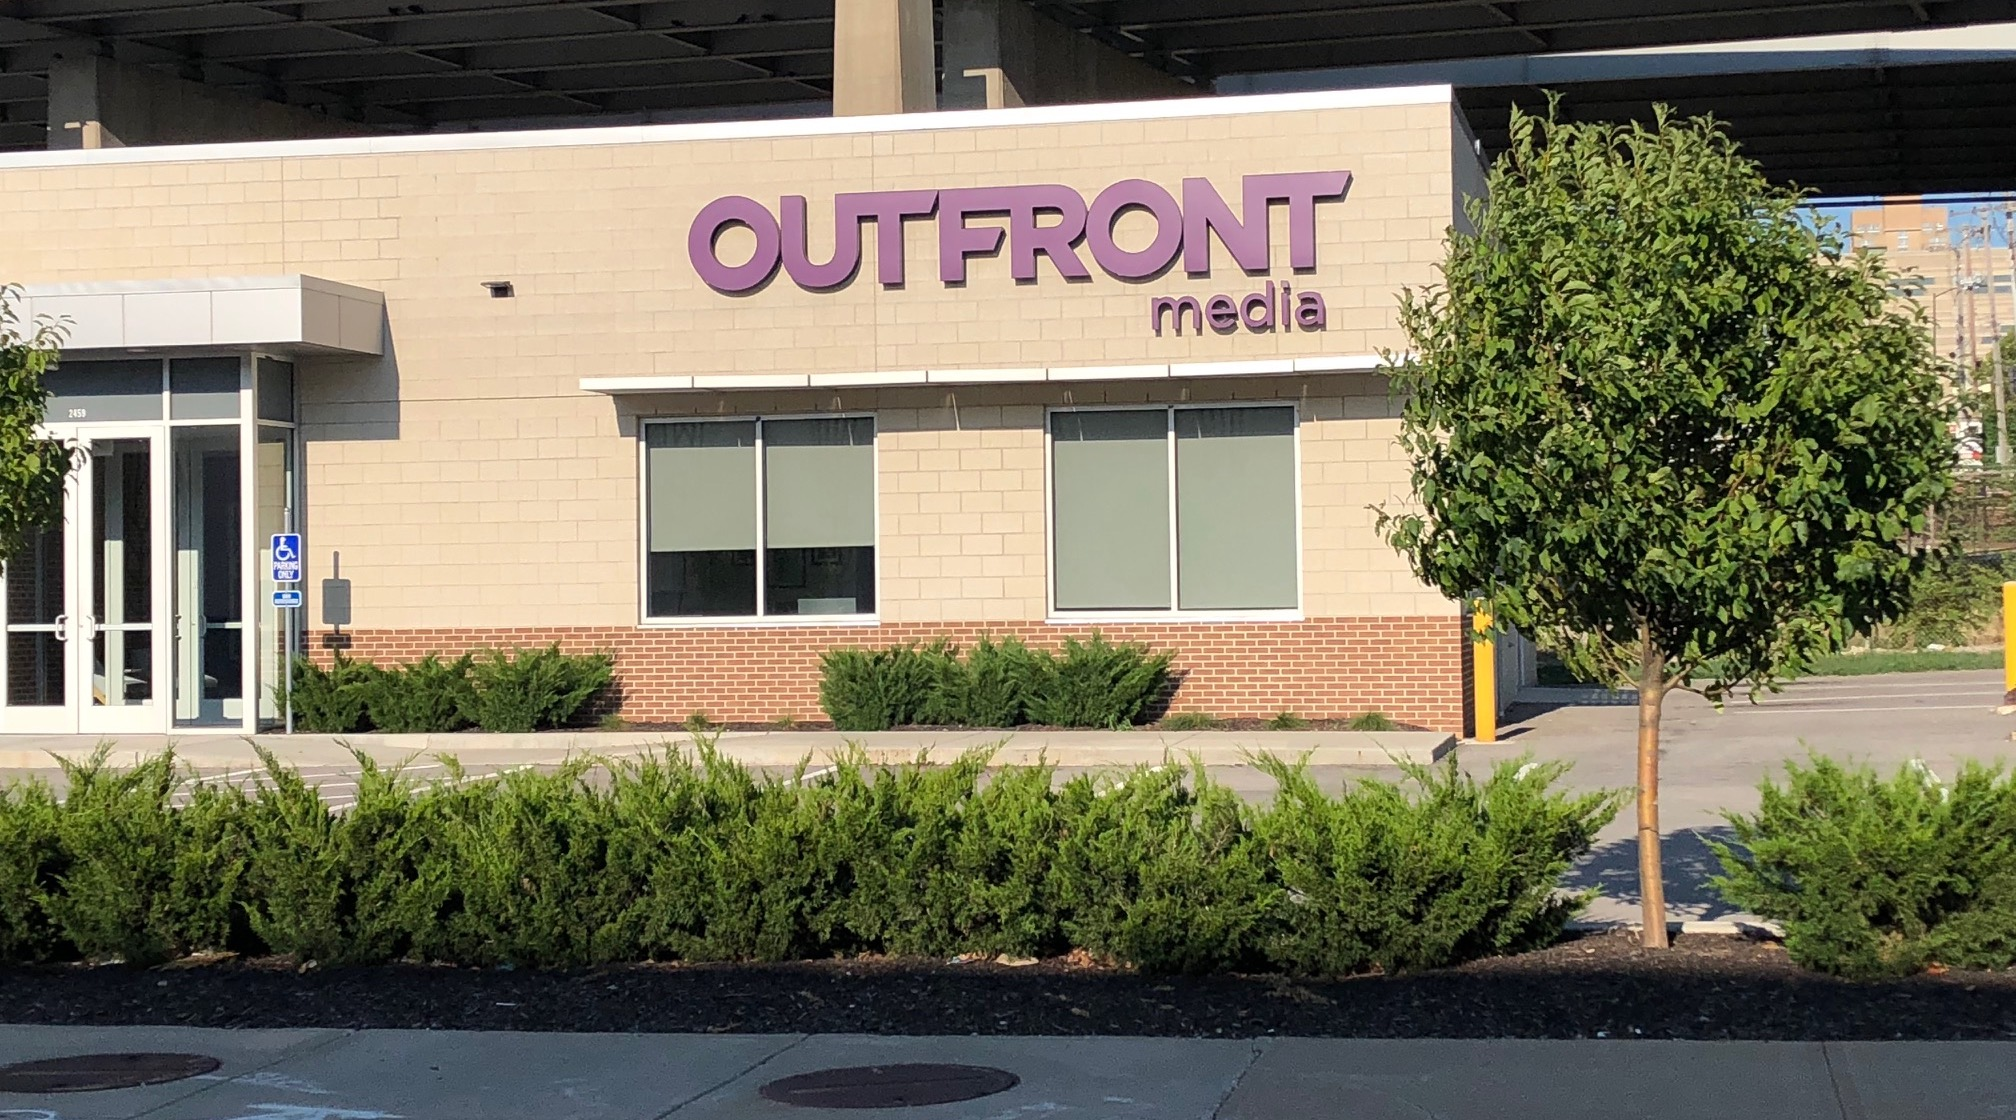 outfront media billboard company